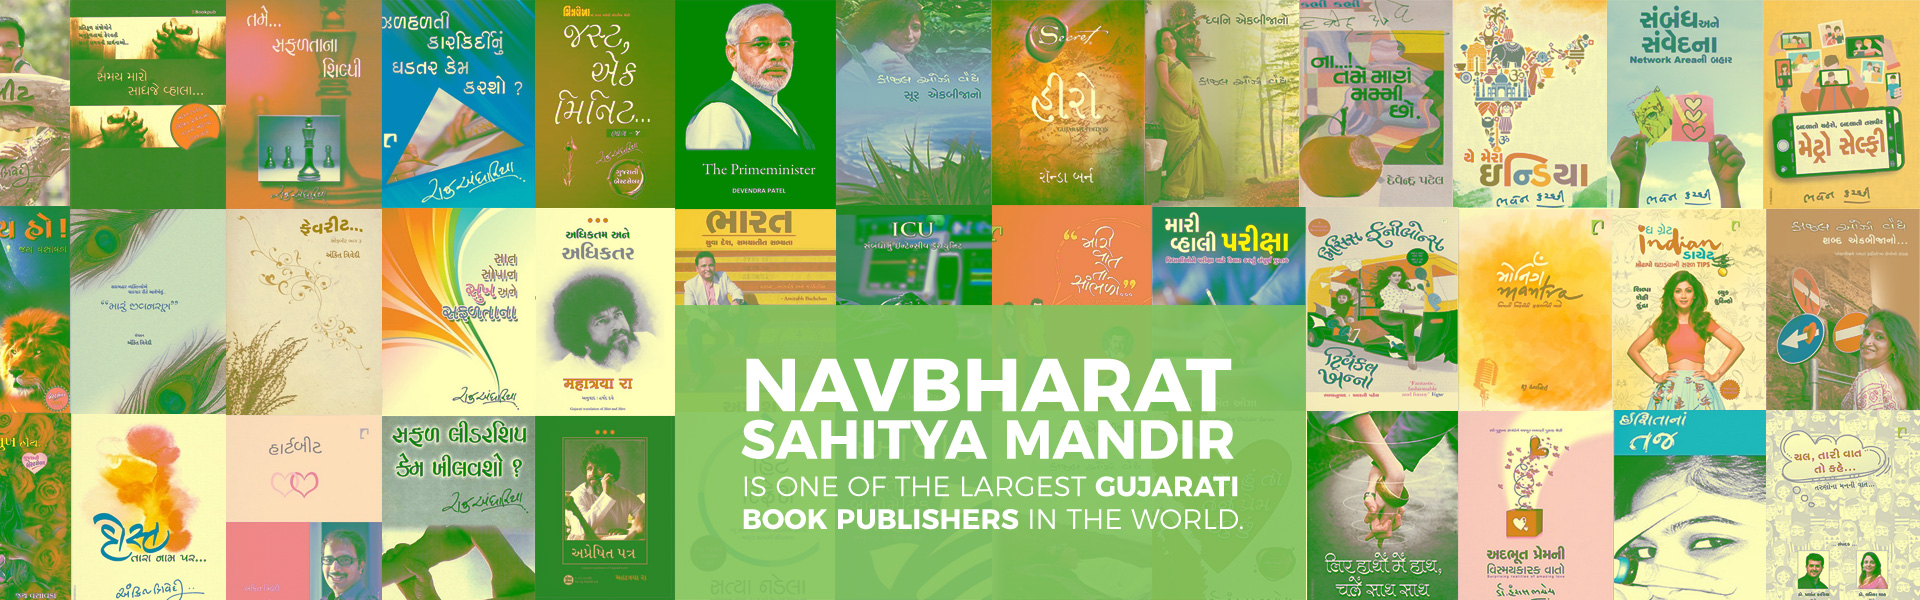 Navbharat Sahitya Mandir One of the largest Gujarati book publishers in the world. It is serving to the world of Gujarati lovers since last four decades.